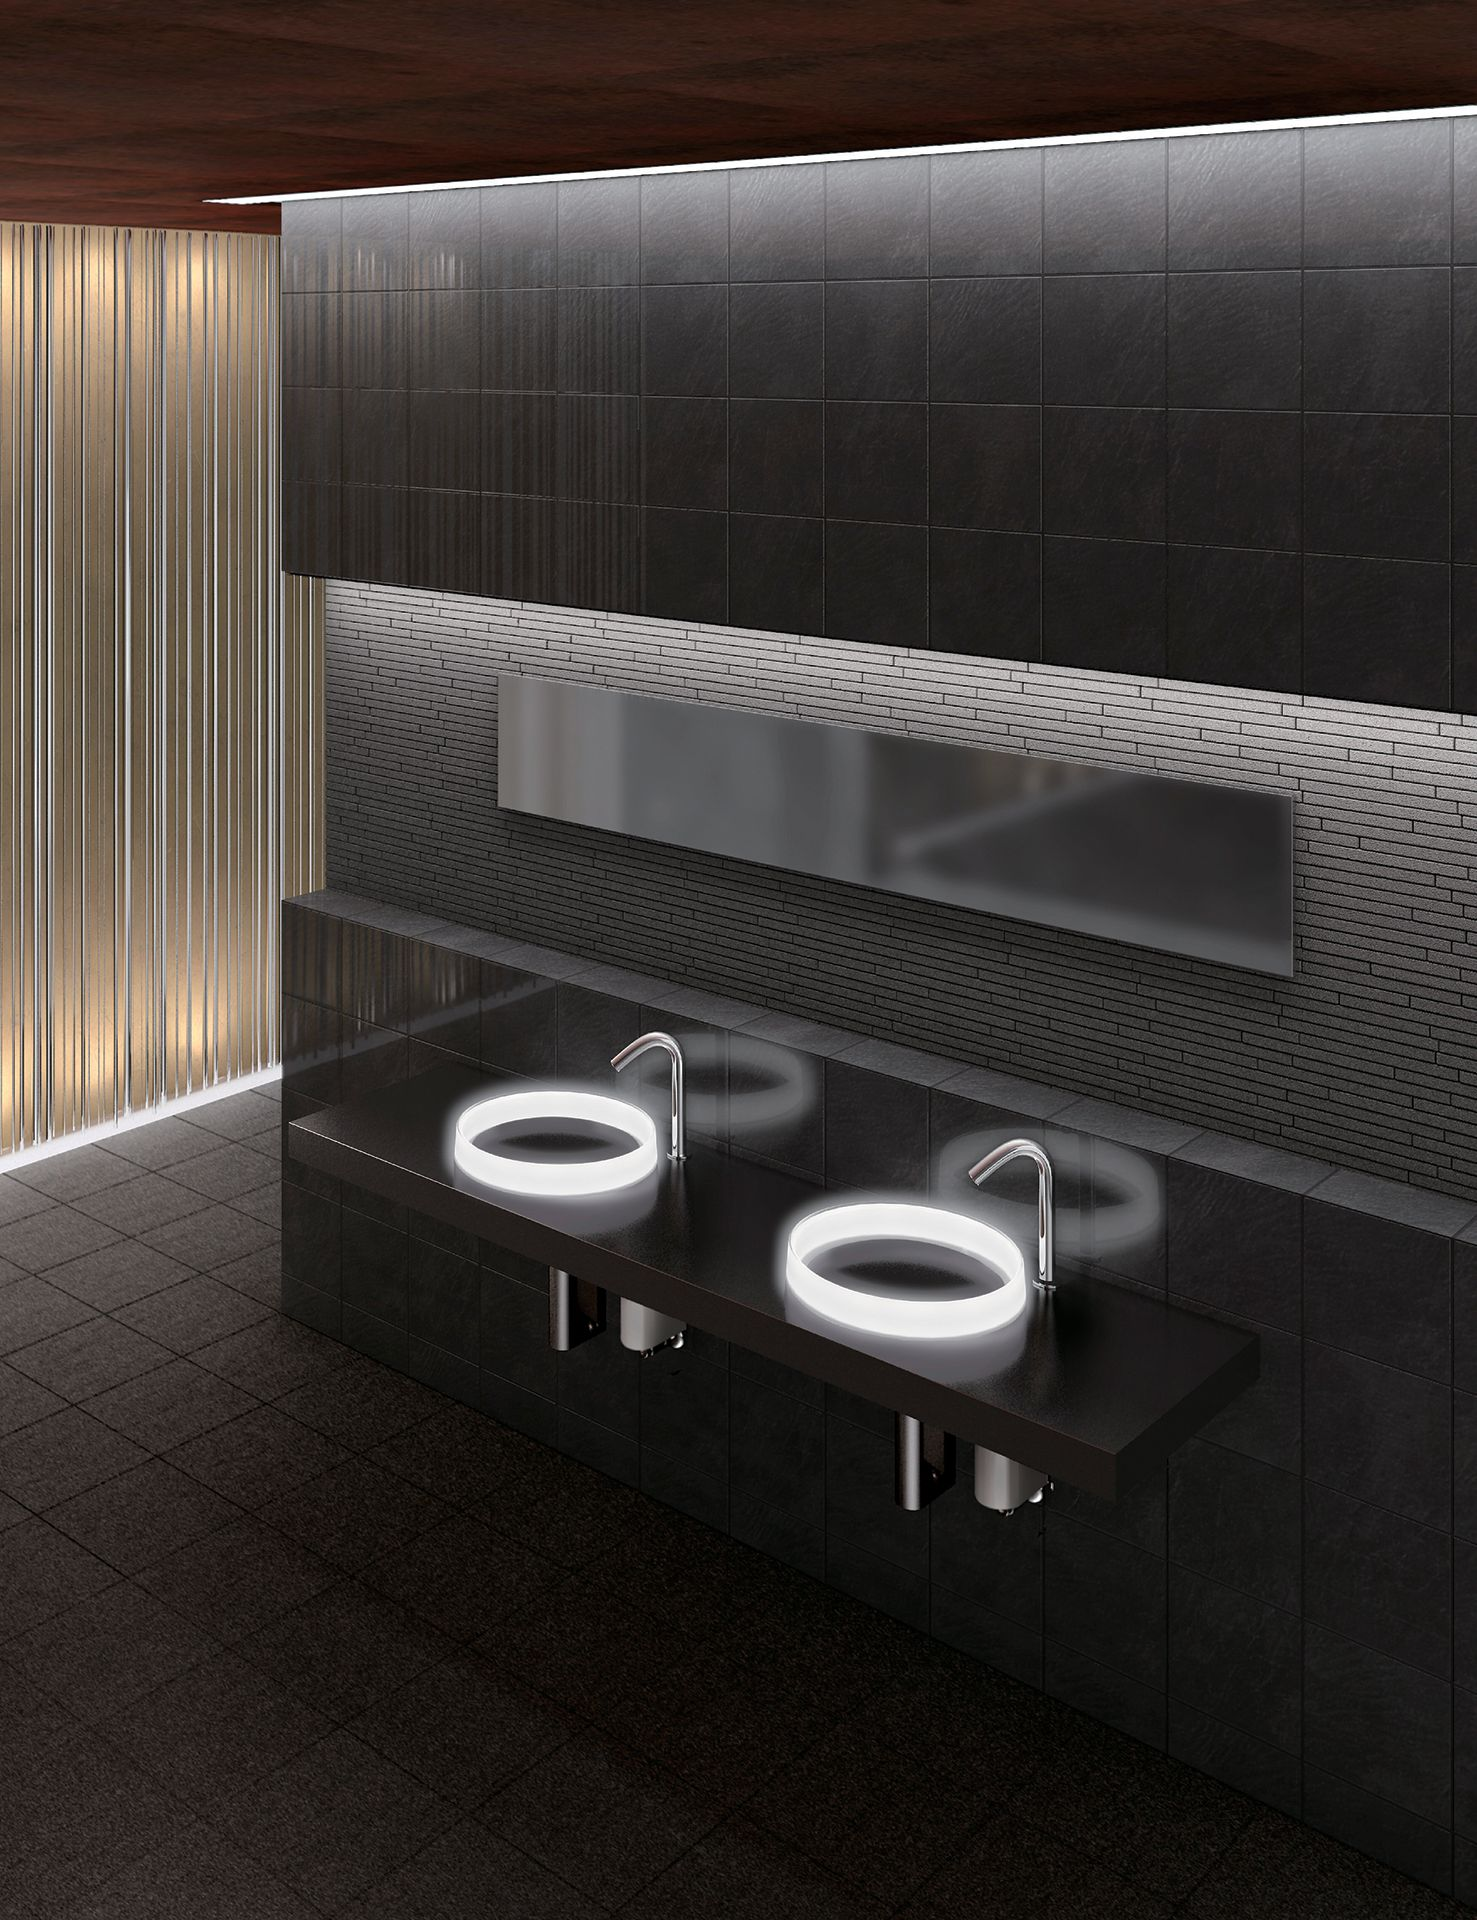 cuve de lavabo ronde avec clairage luminist. Black Bedroom Furniture Sets. Home Design Ideas